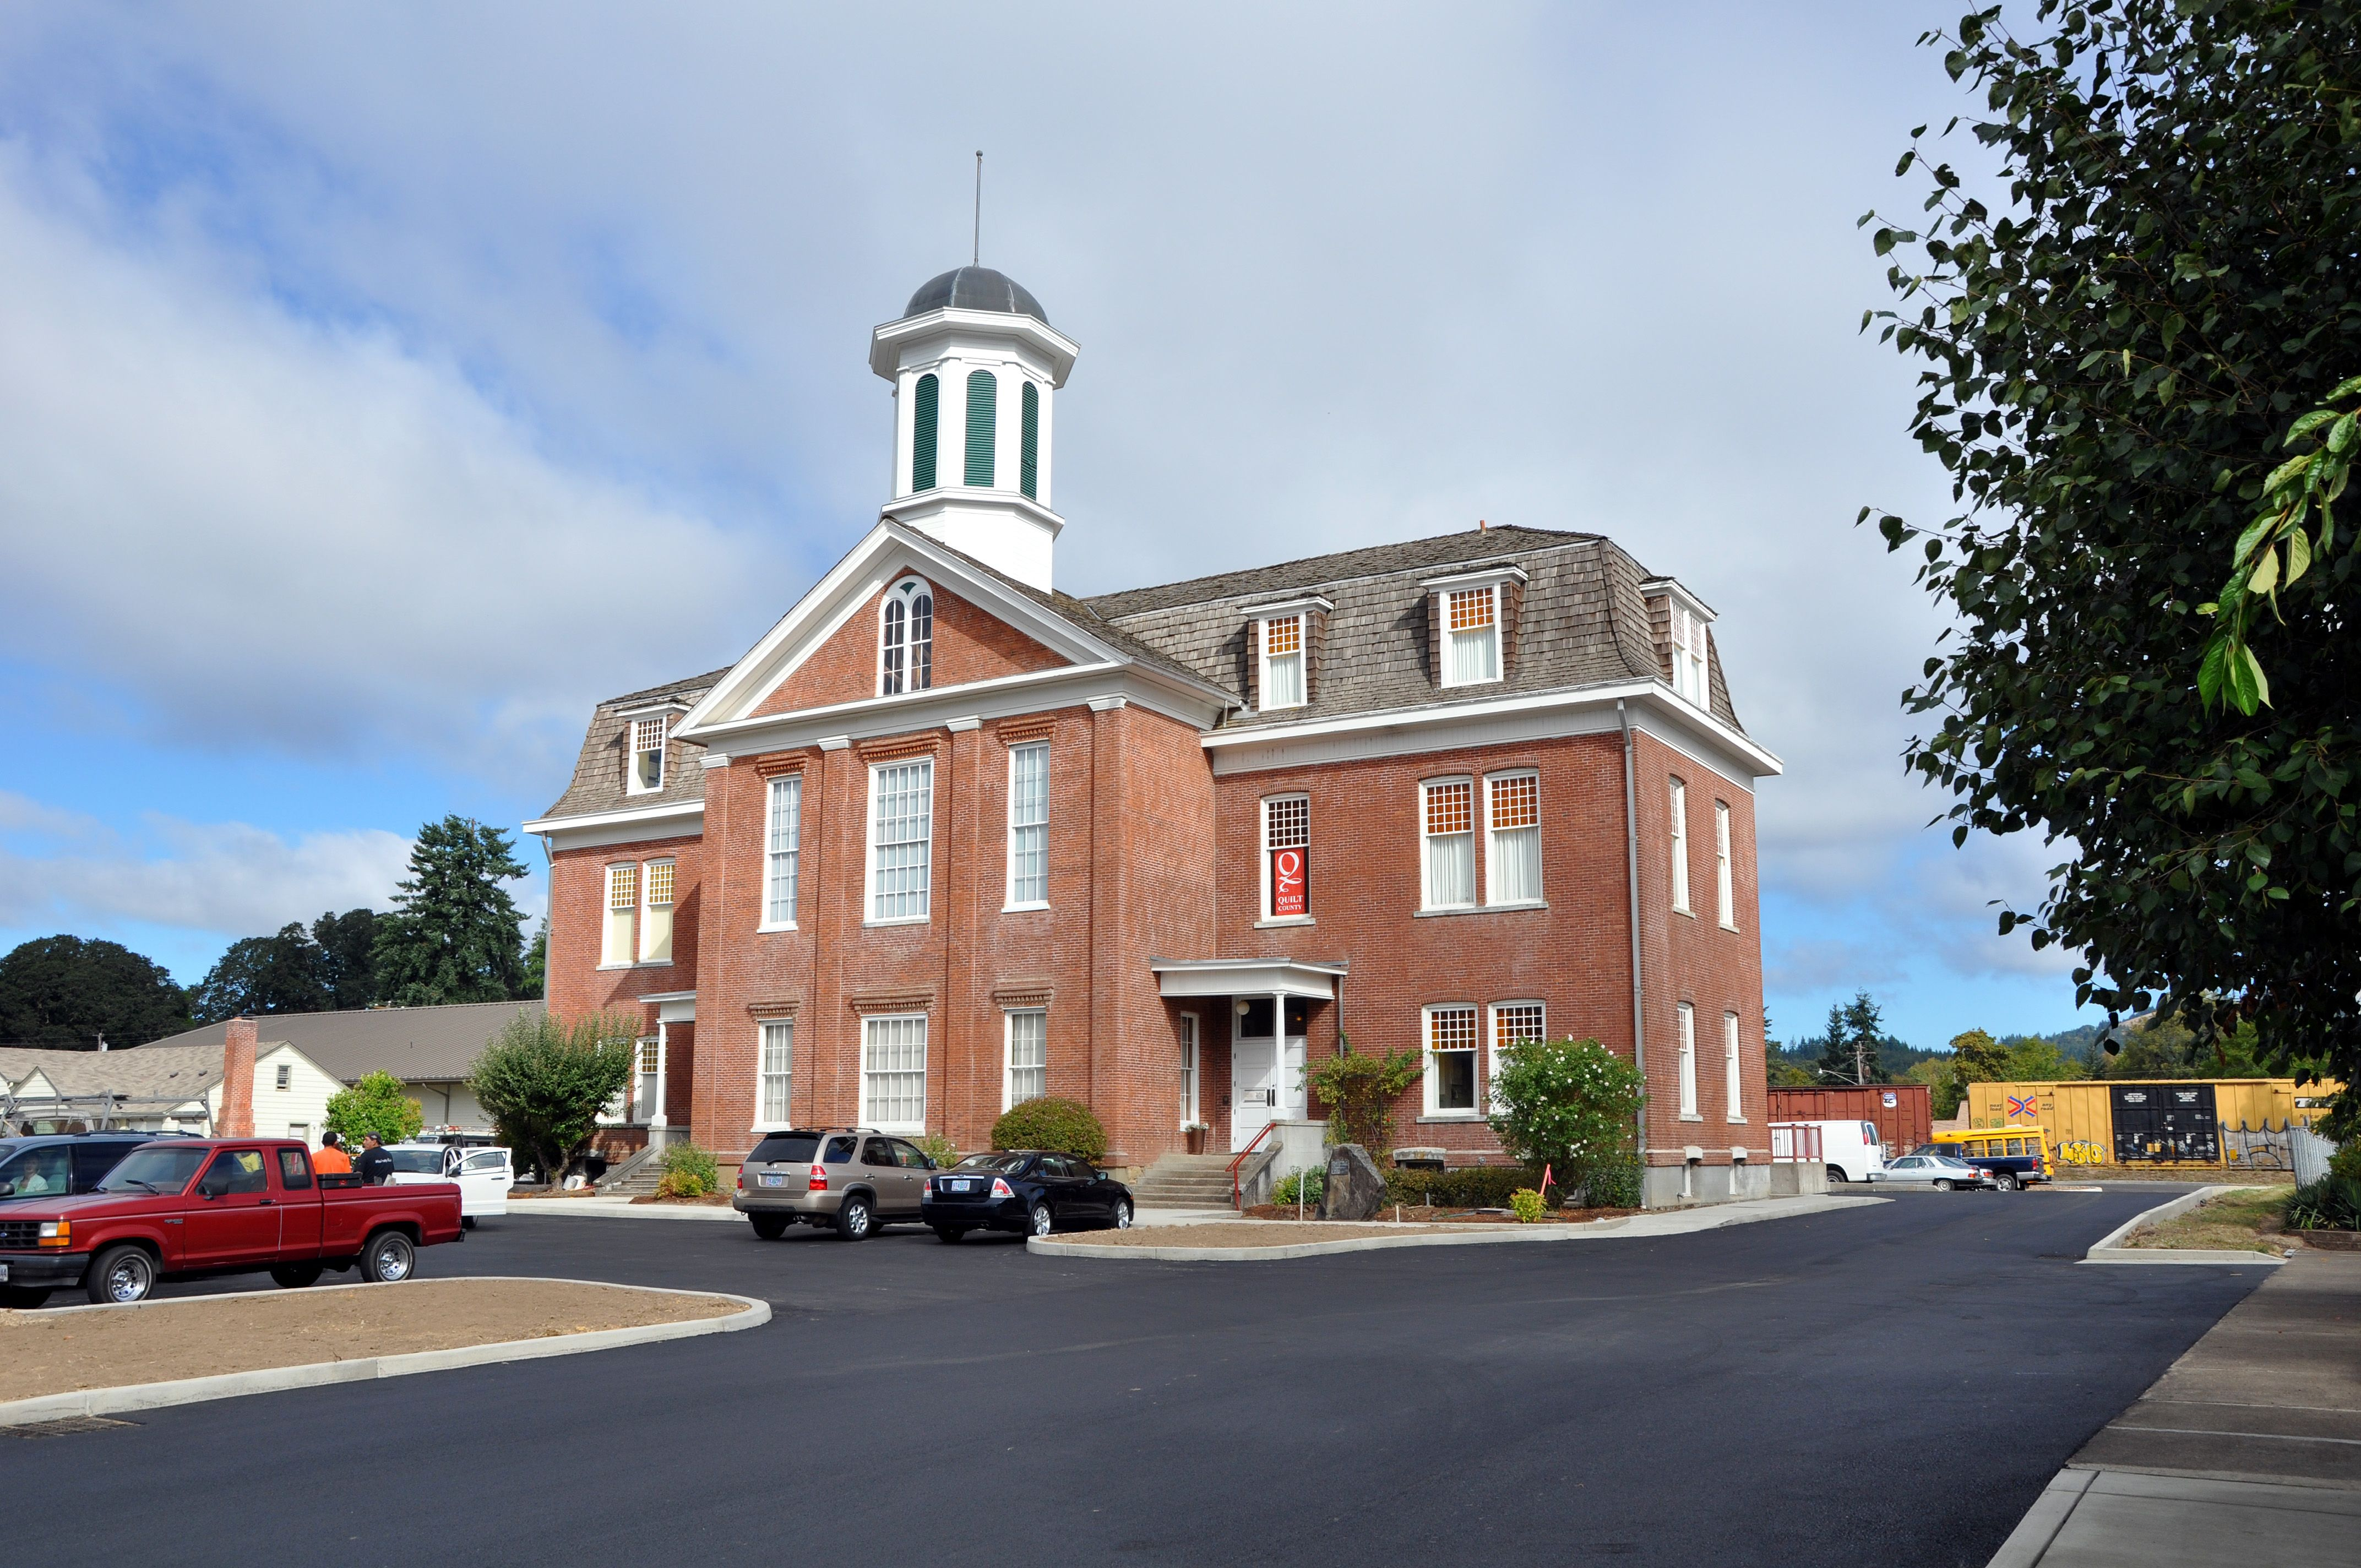 Benton County Historical Museum In Philomath, In The U. State Of Oregon. I  Lived In Philomath, Oregon From 1964 To